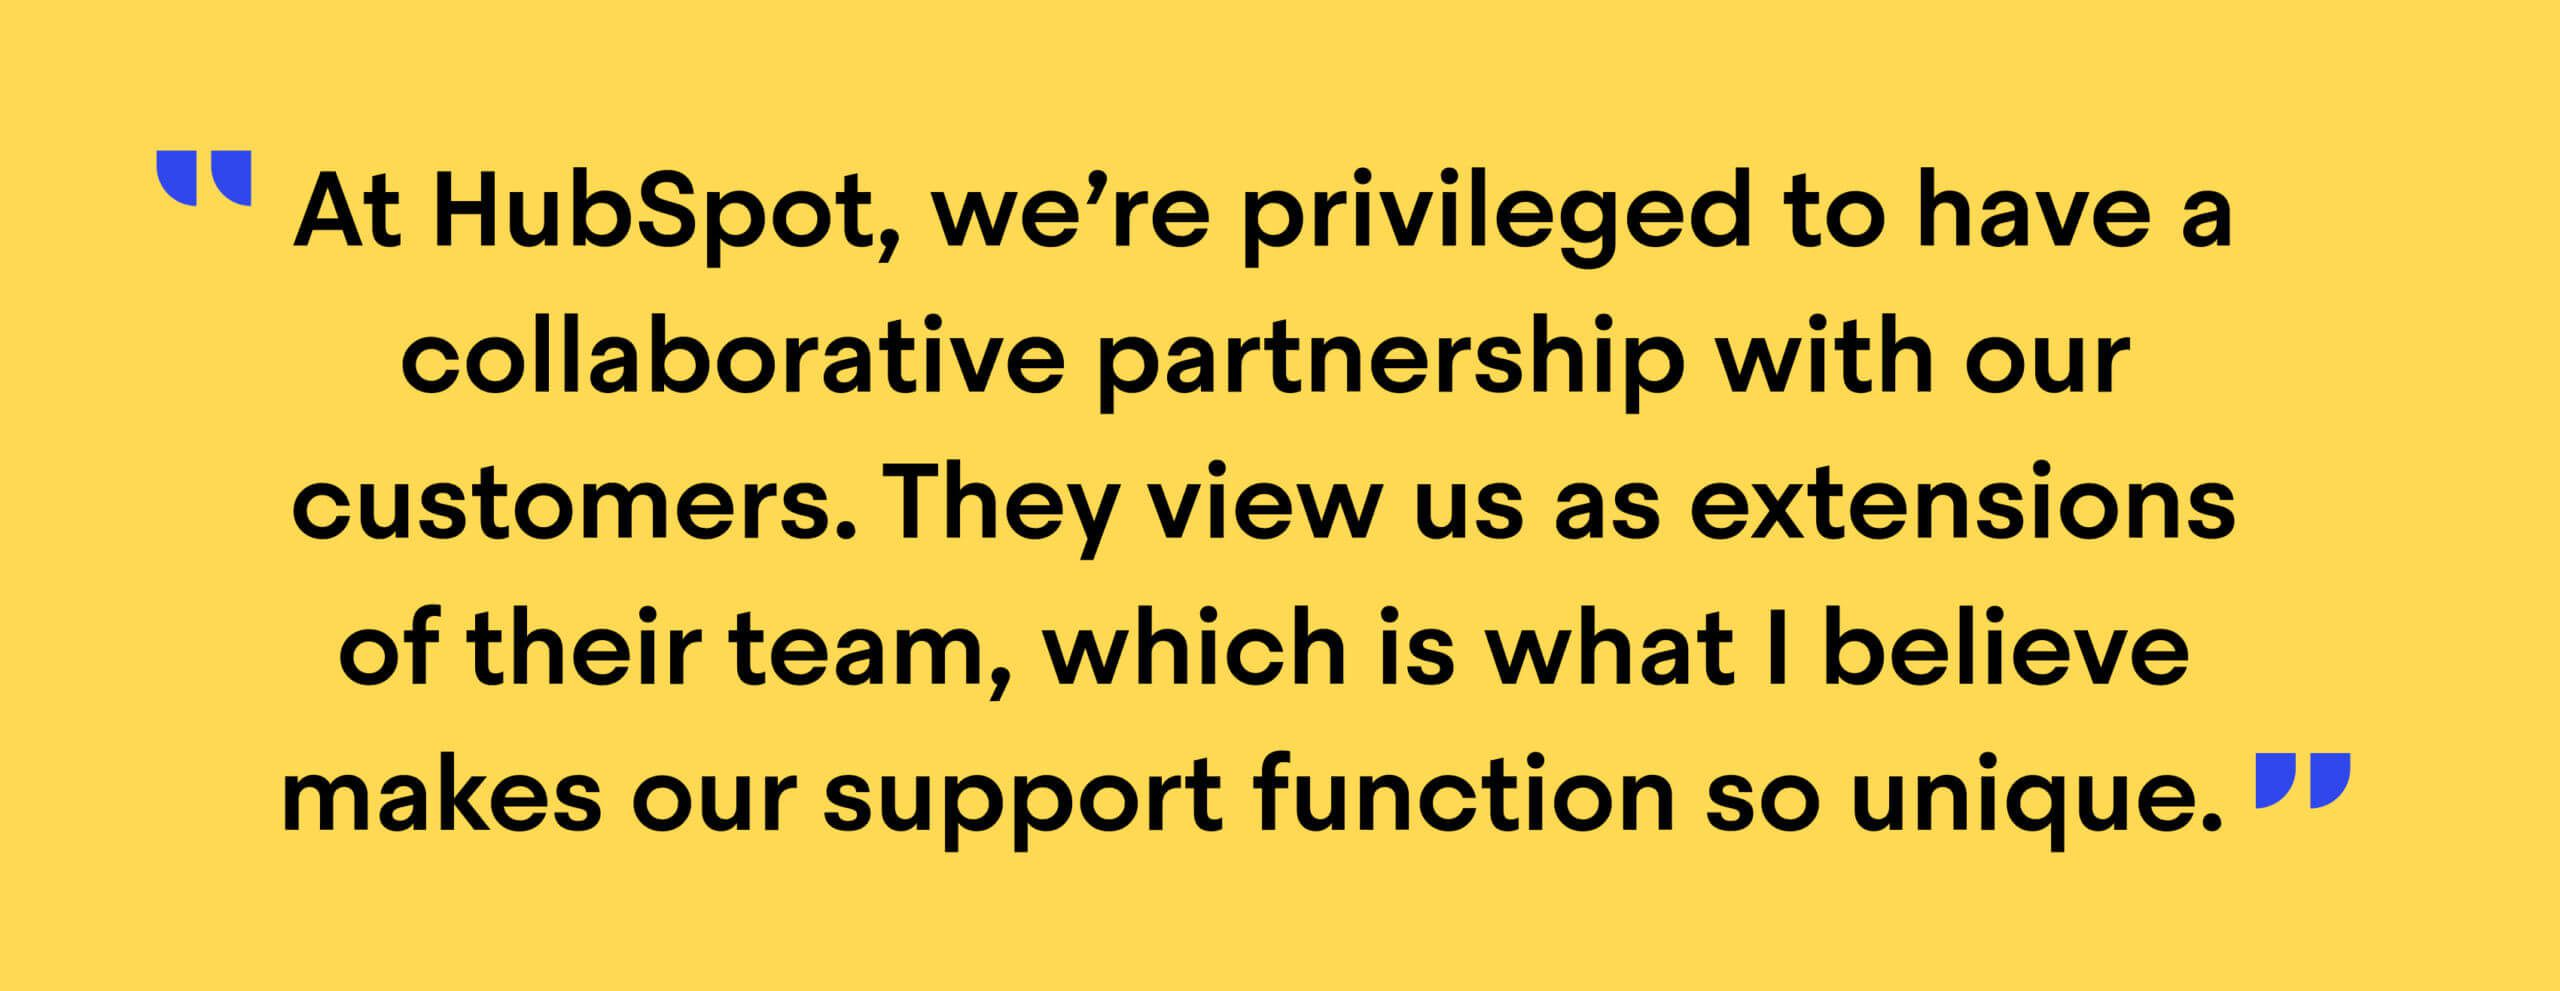 """Quote from Jean-Bernard Baptiste: """"At HubSpot, we're privileged to have a collaborative partnership with our customers. They view us as extensions of their team, which is what I believe makes our support function so unique."""""""